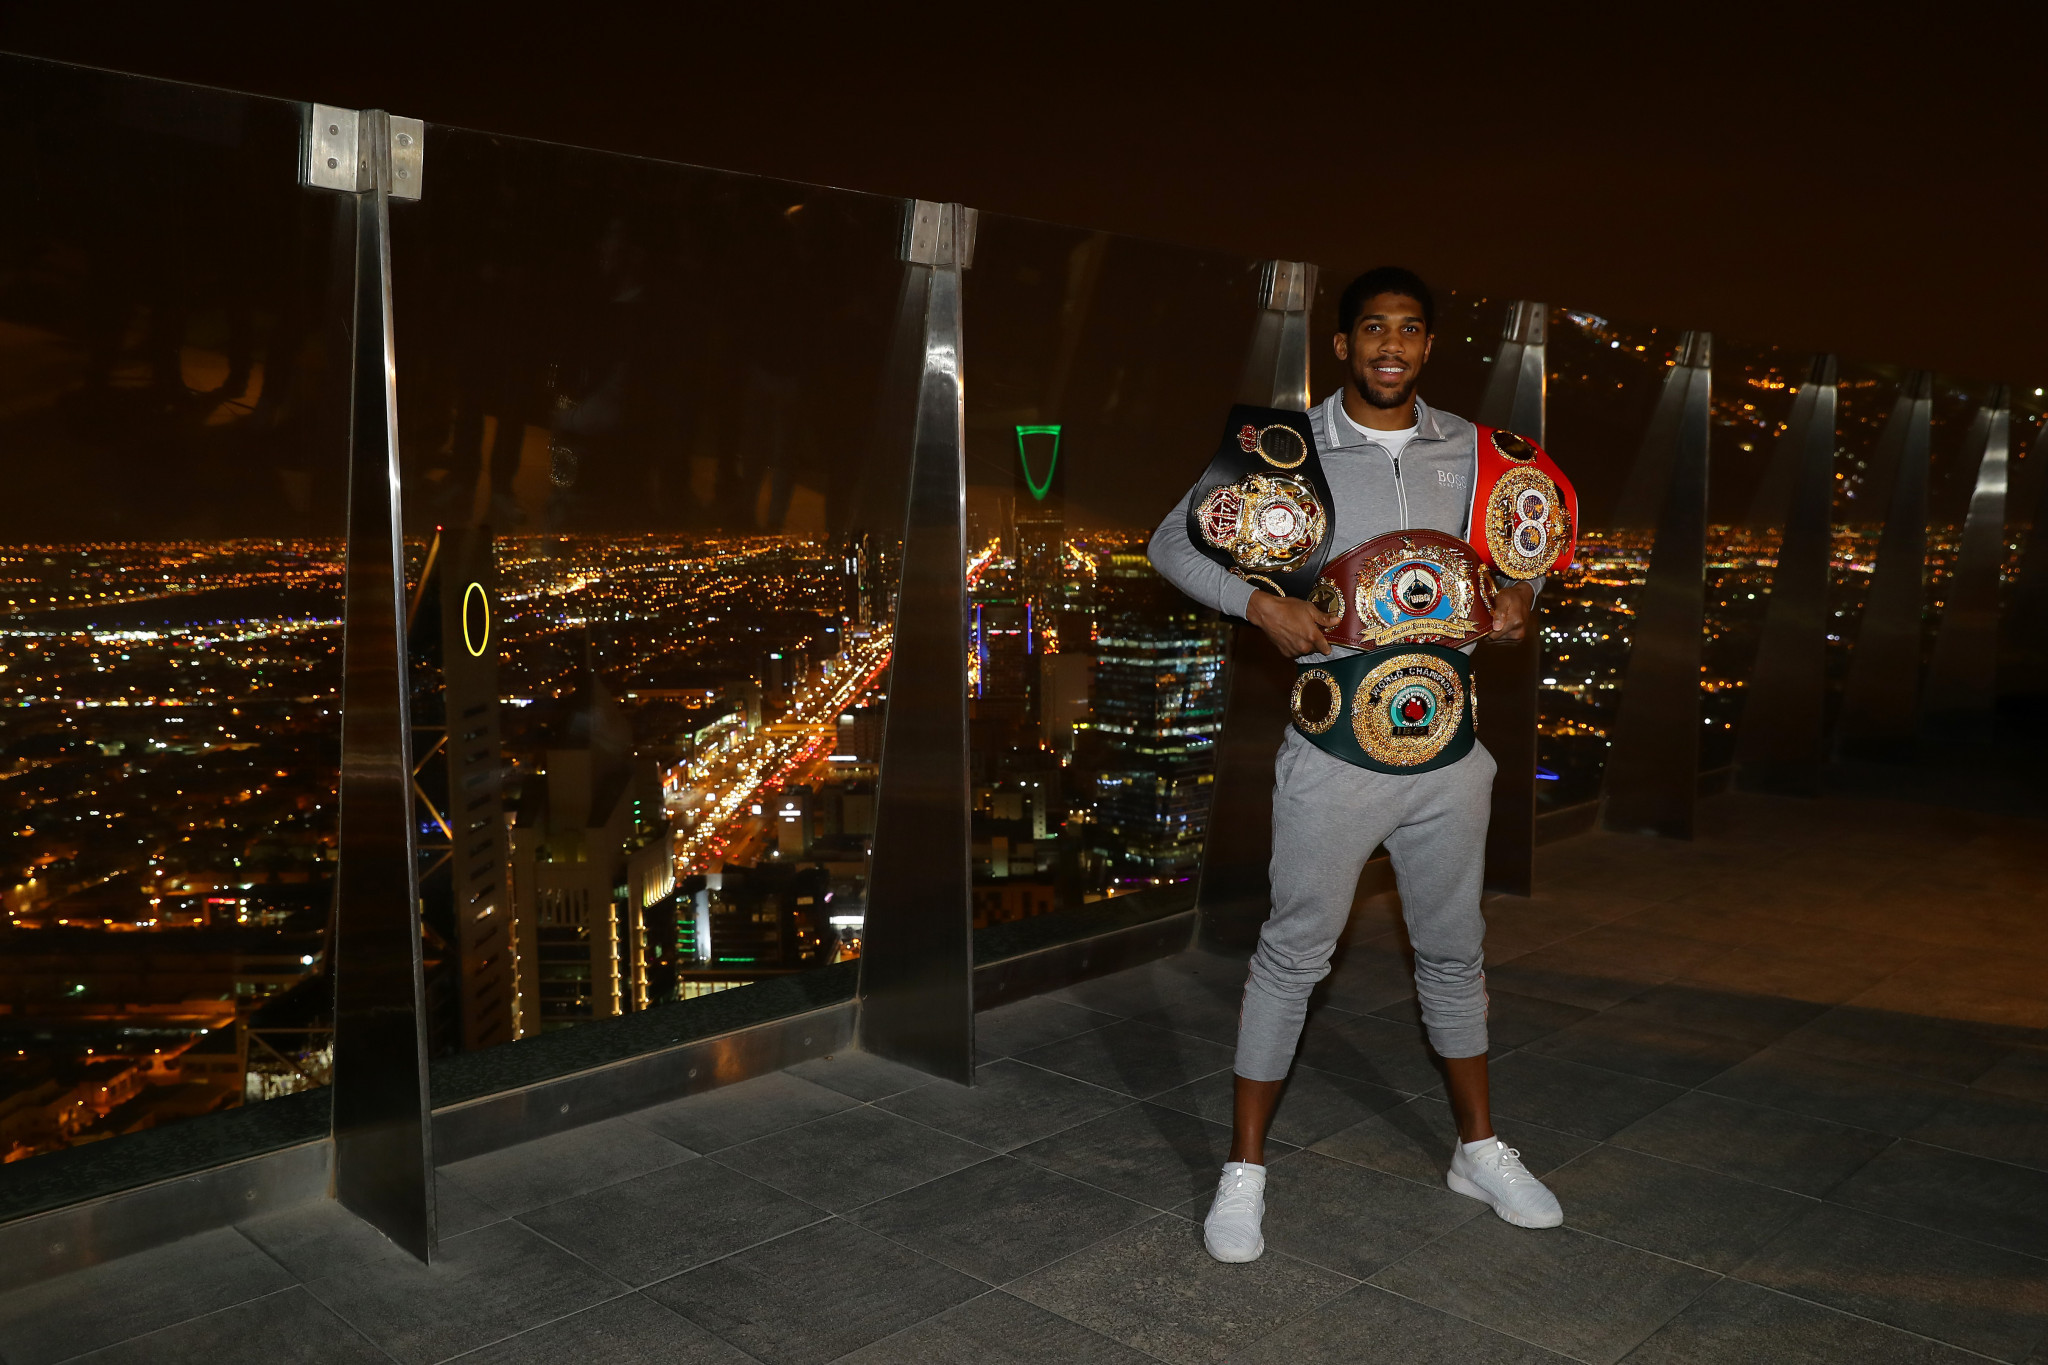 British boxer Anthony Joshua took part in a controversial fight in Saudi Arabia ©Getty Images